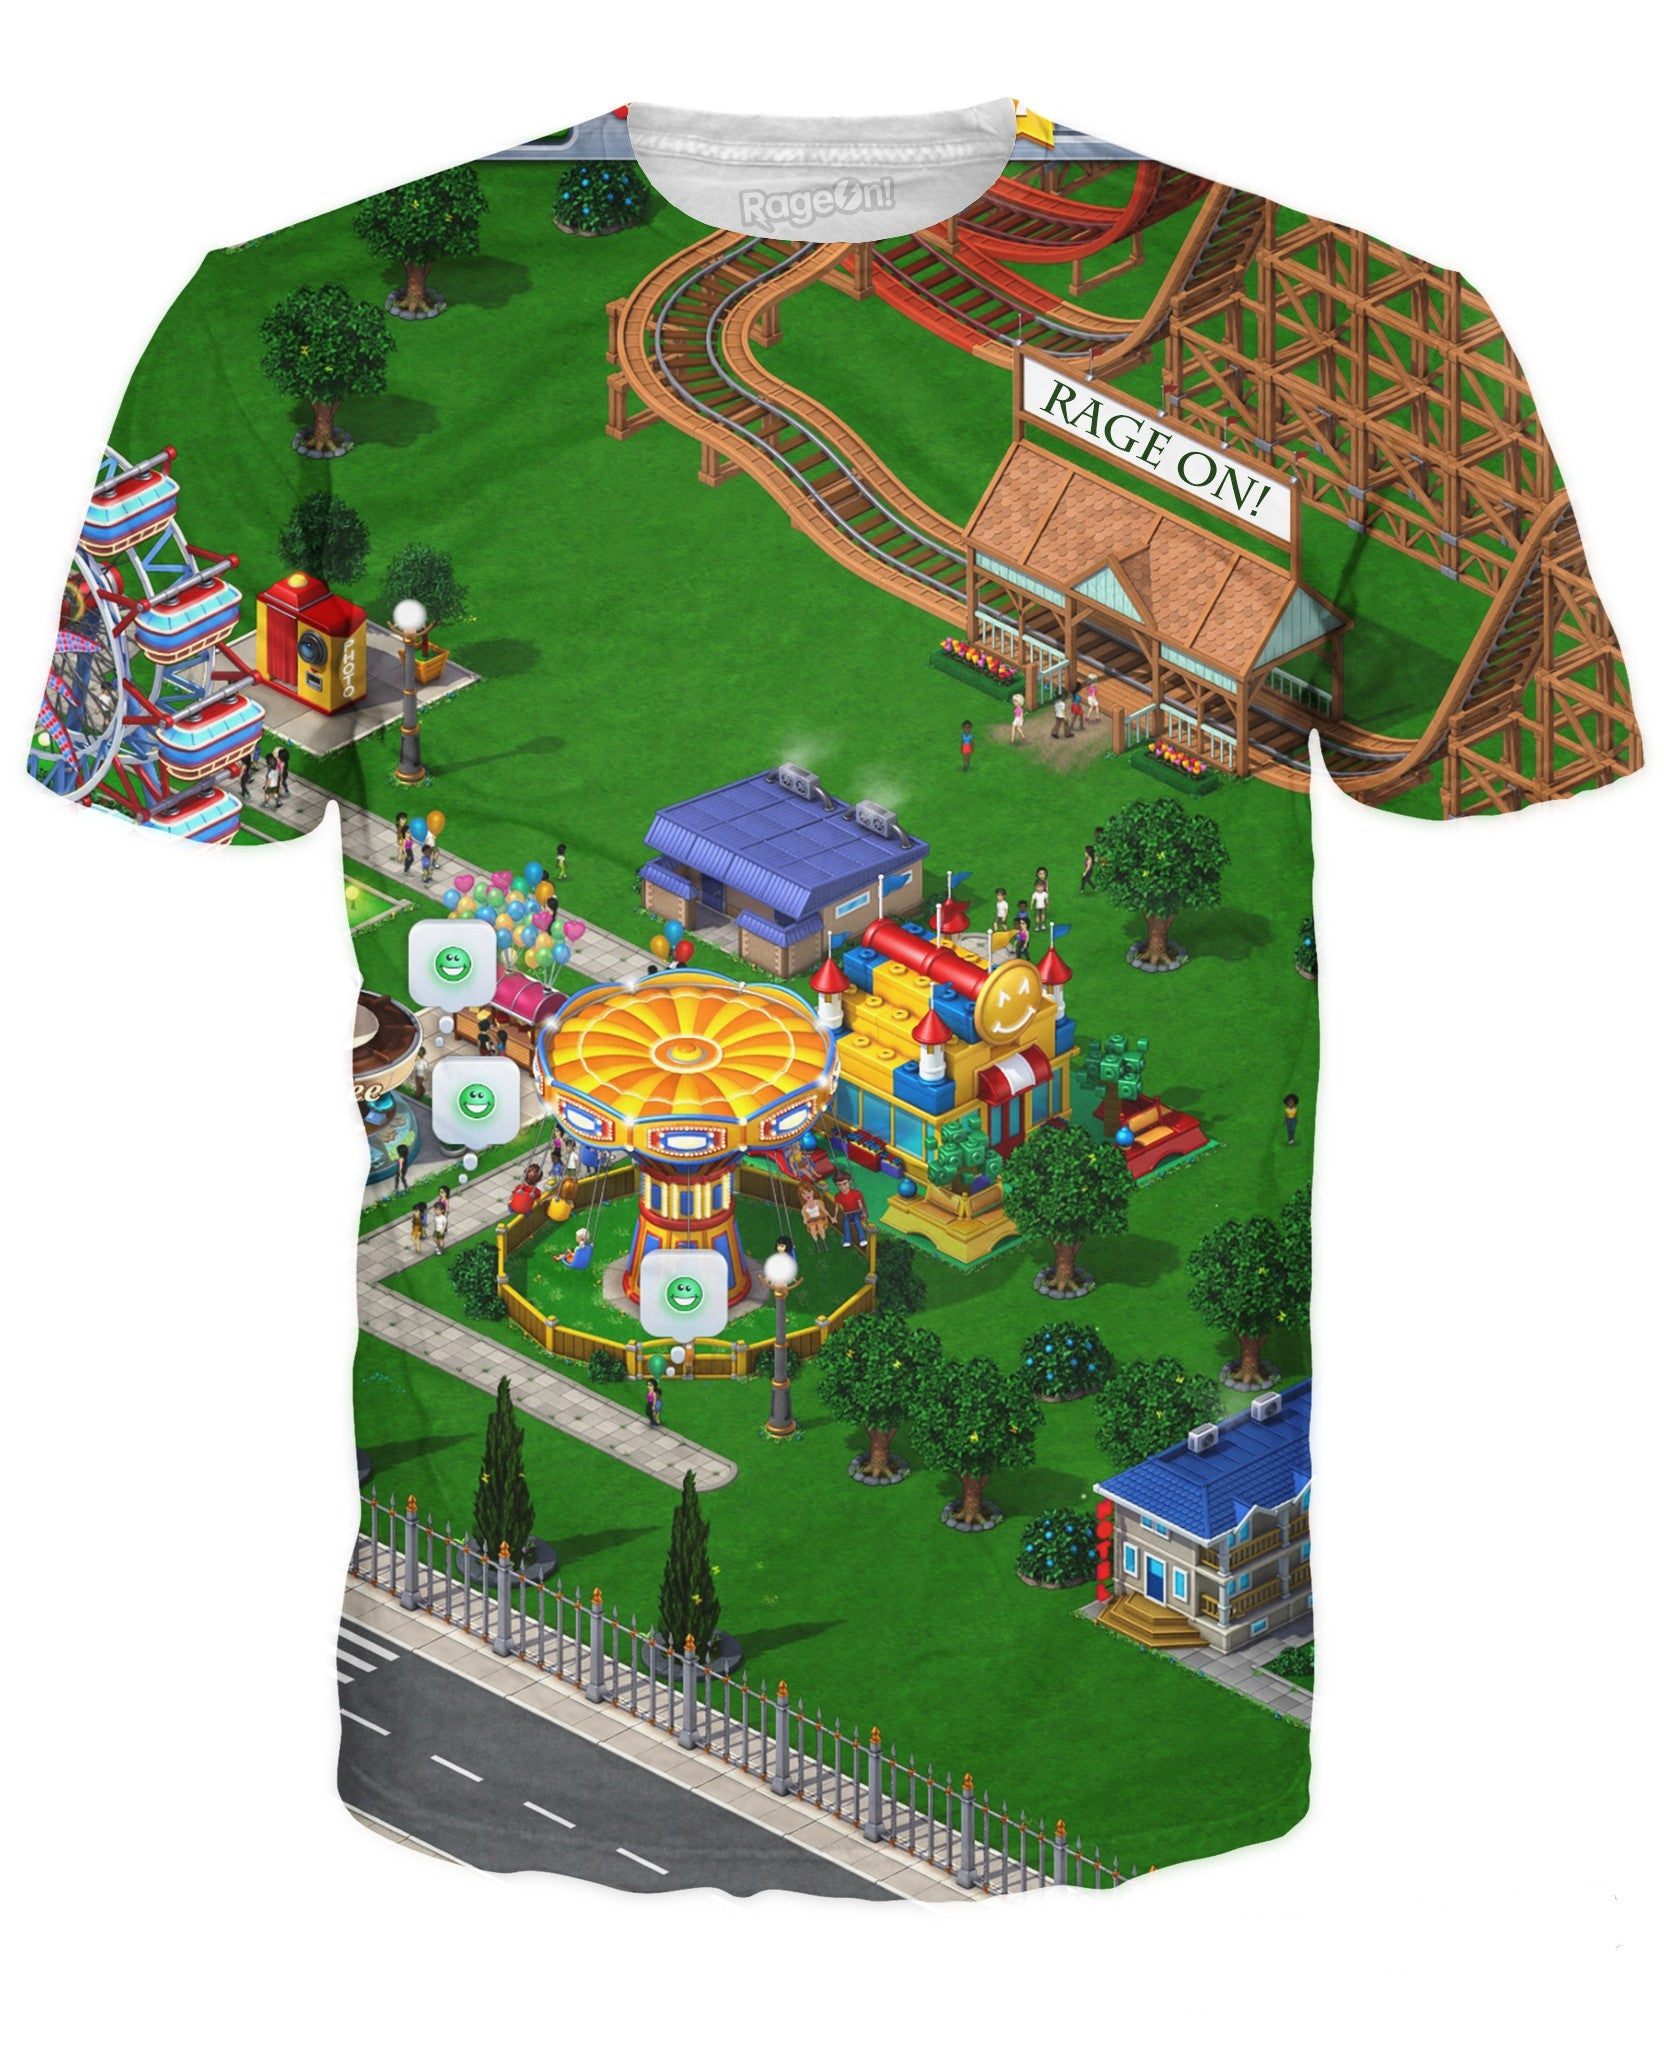 Rollercoaster Tycoon T-Shirt